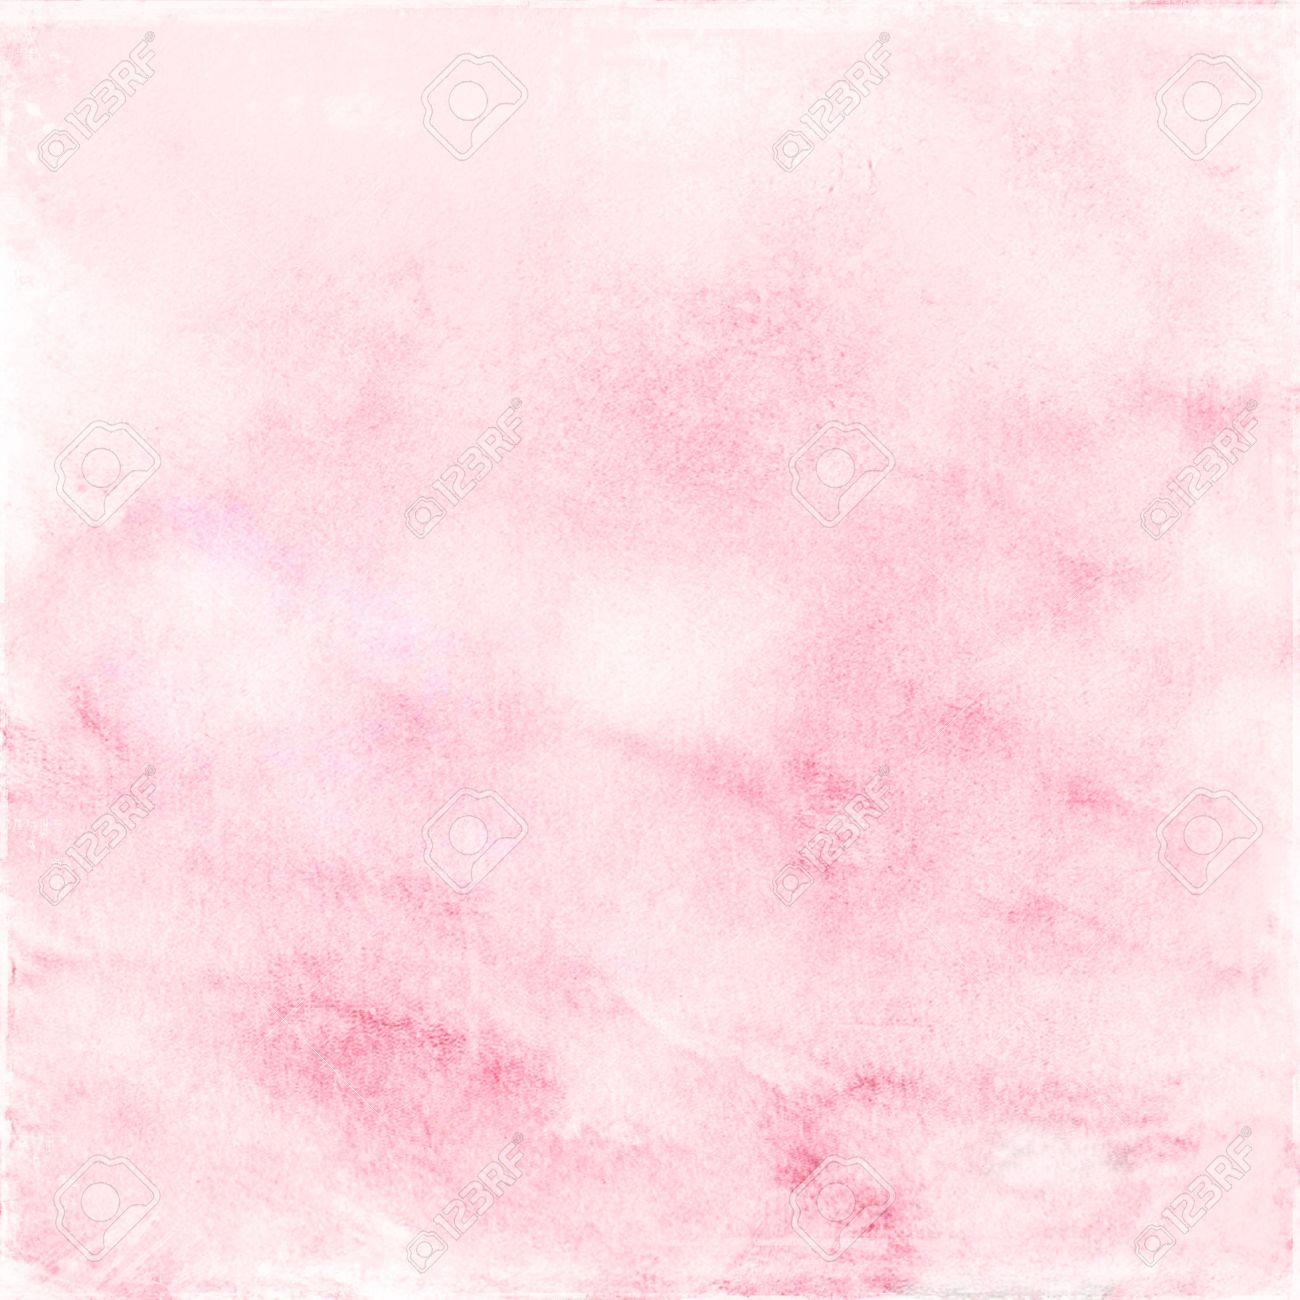 Pink Watercolor Background Stock Photo Picture And Royalty 1300x1300